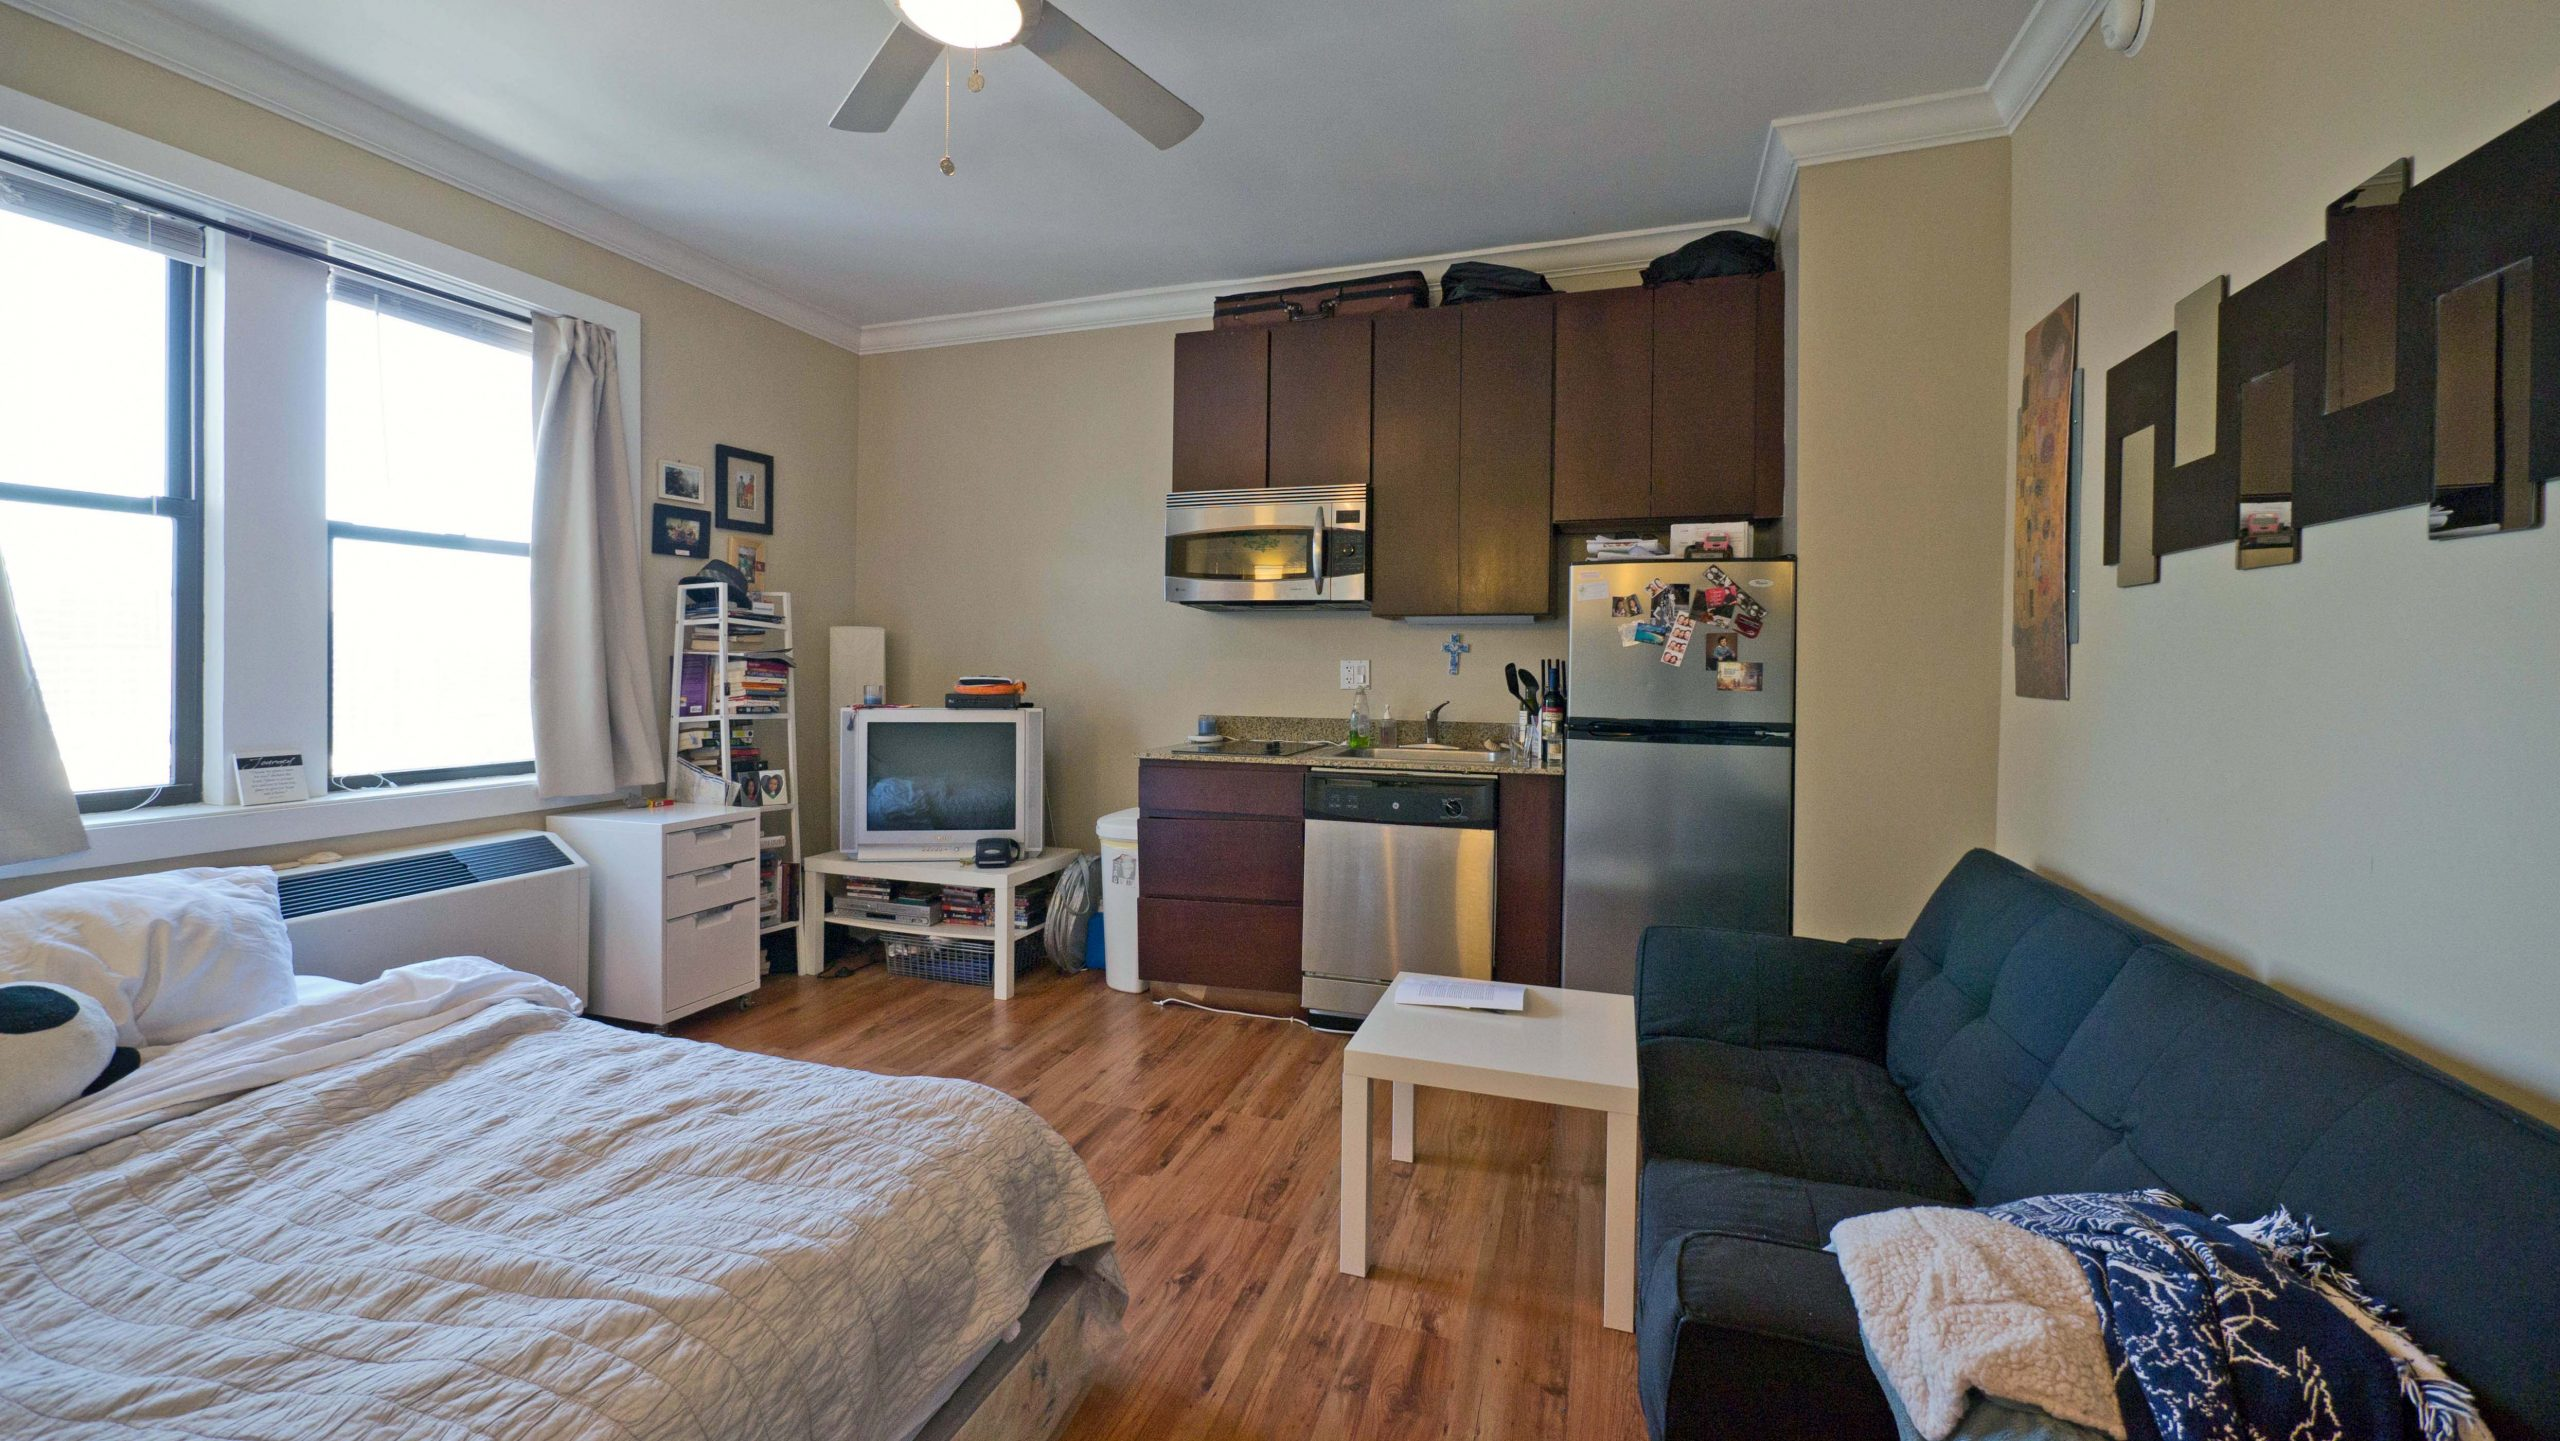 2 bedroom house for rent near me cheap